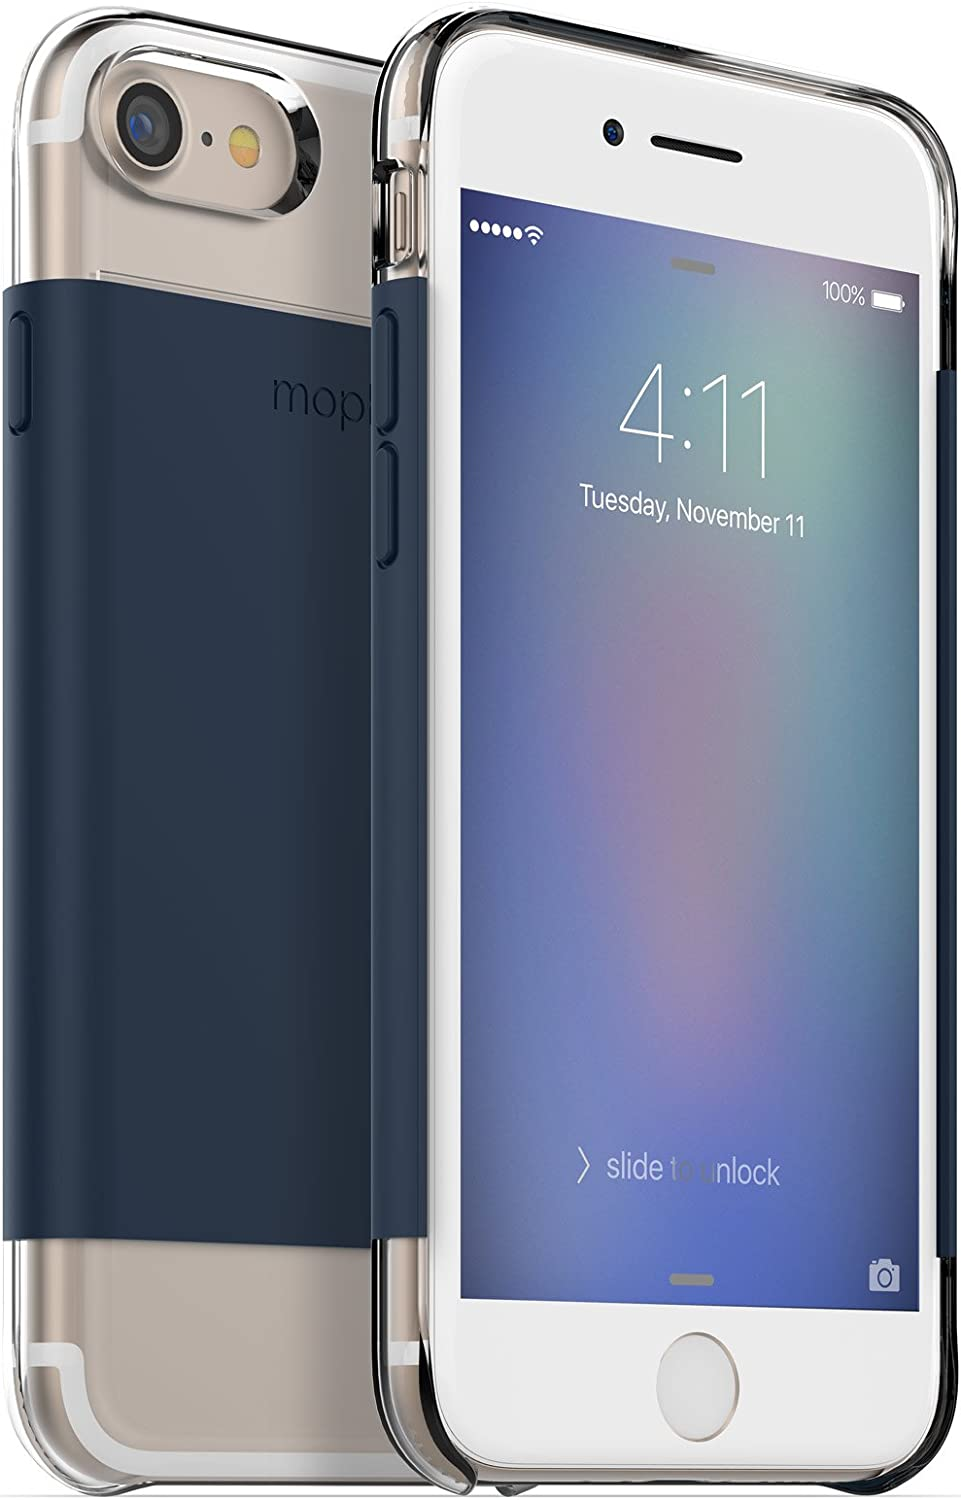 mophie Hold Force wrap Base Case for Apple iPhone 8, iPhone 7 - Navy